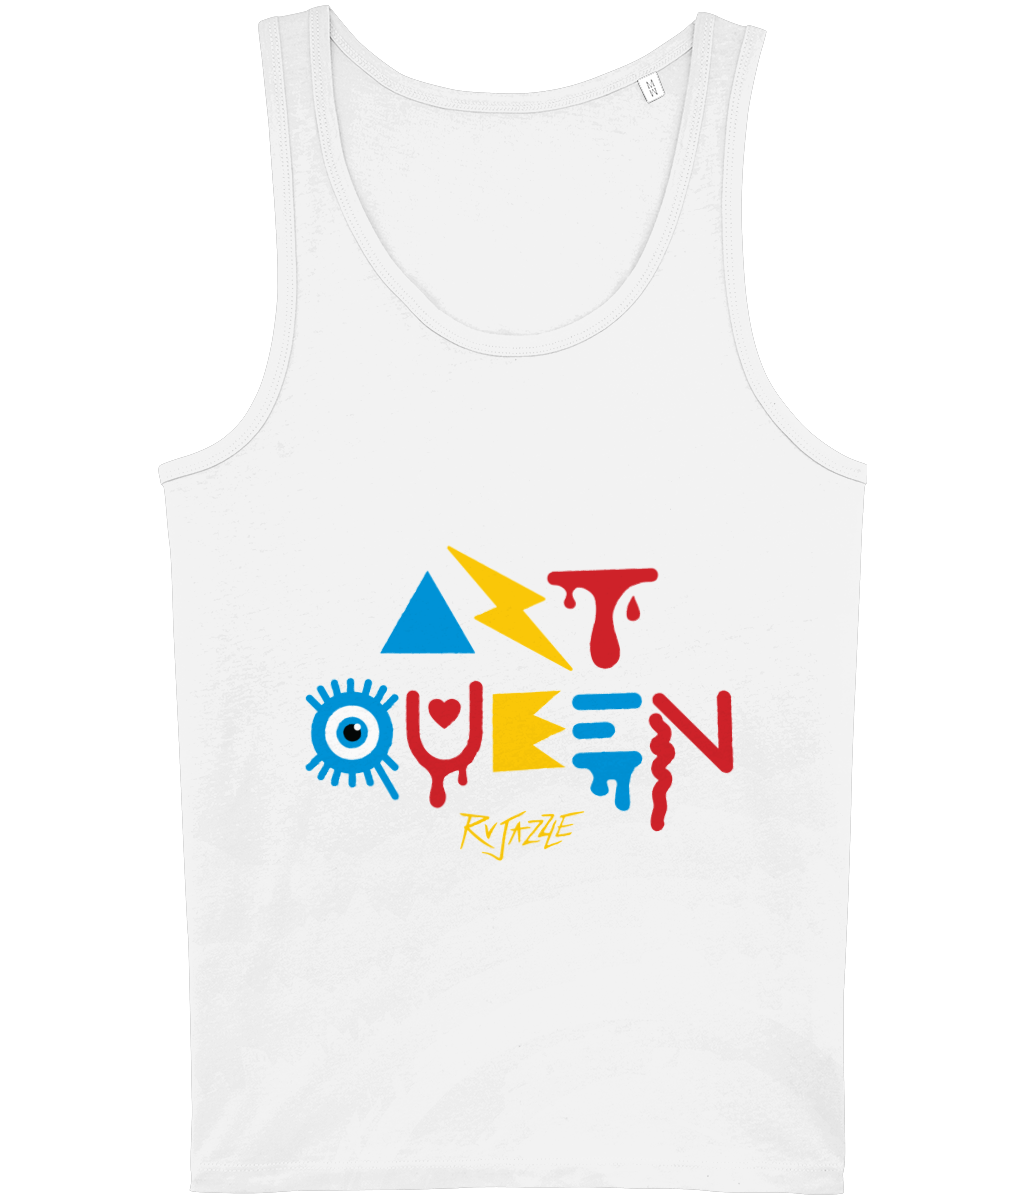 Rujazzle - Art Queen Vest - SNATCHED